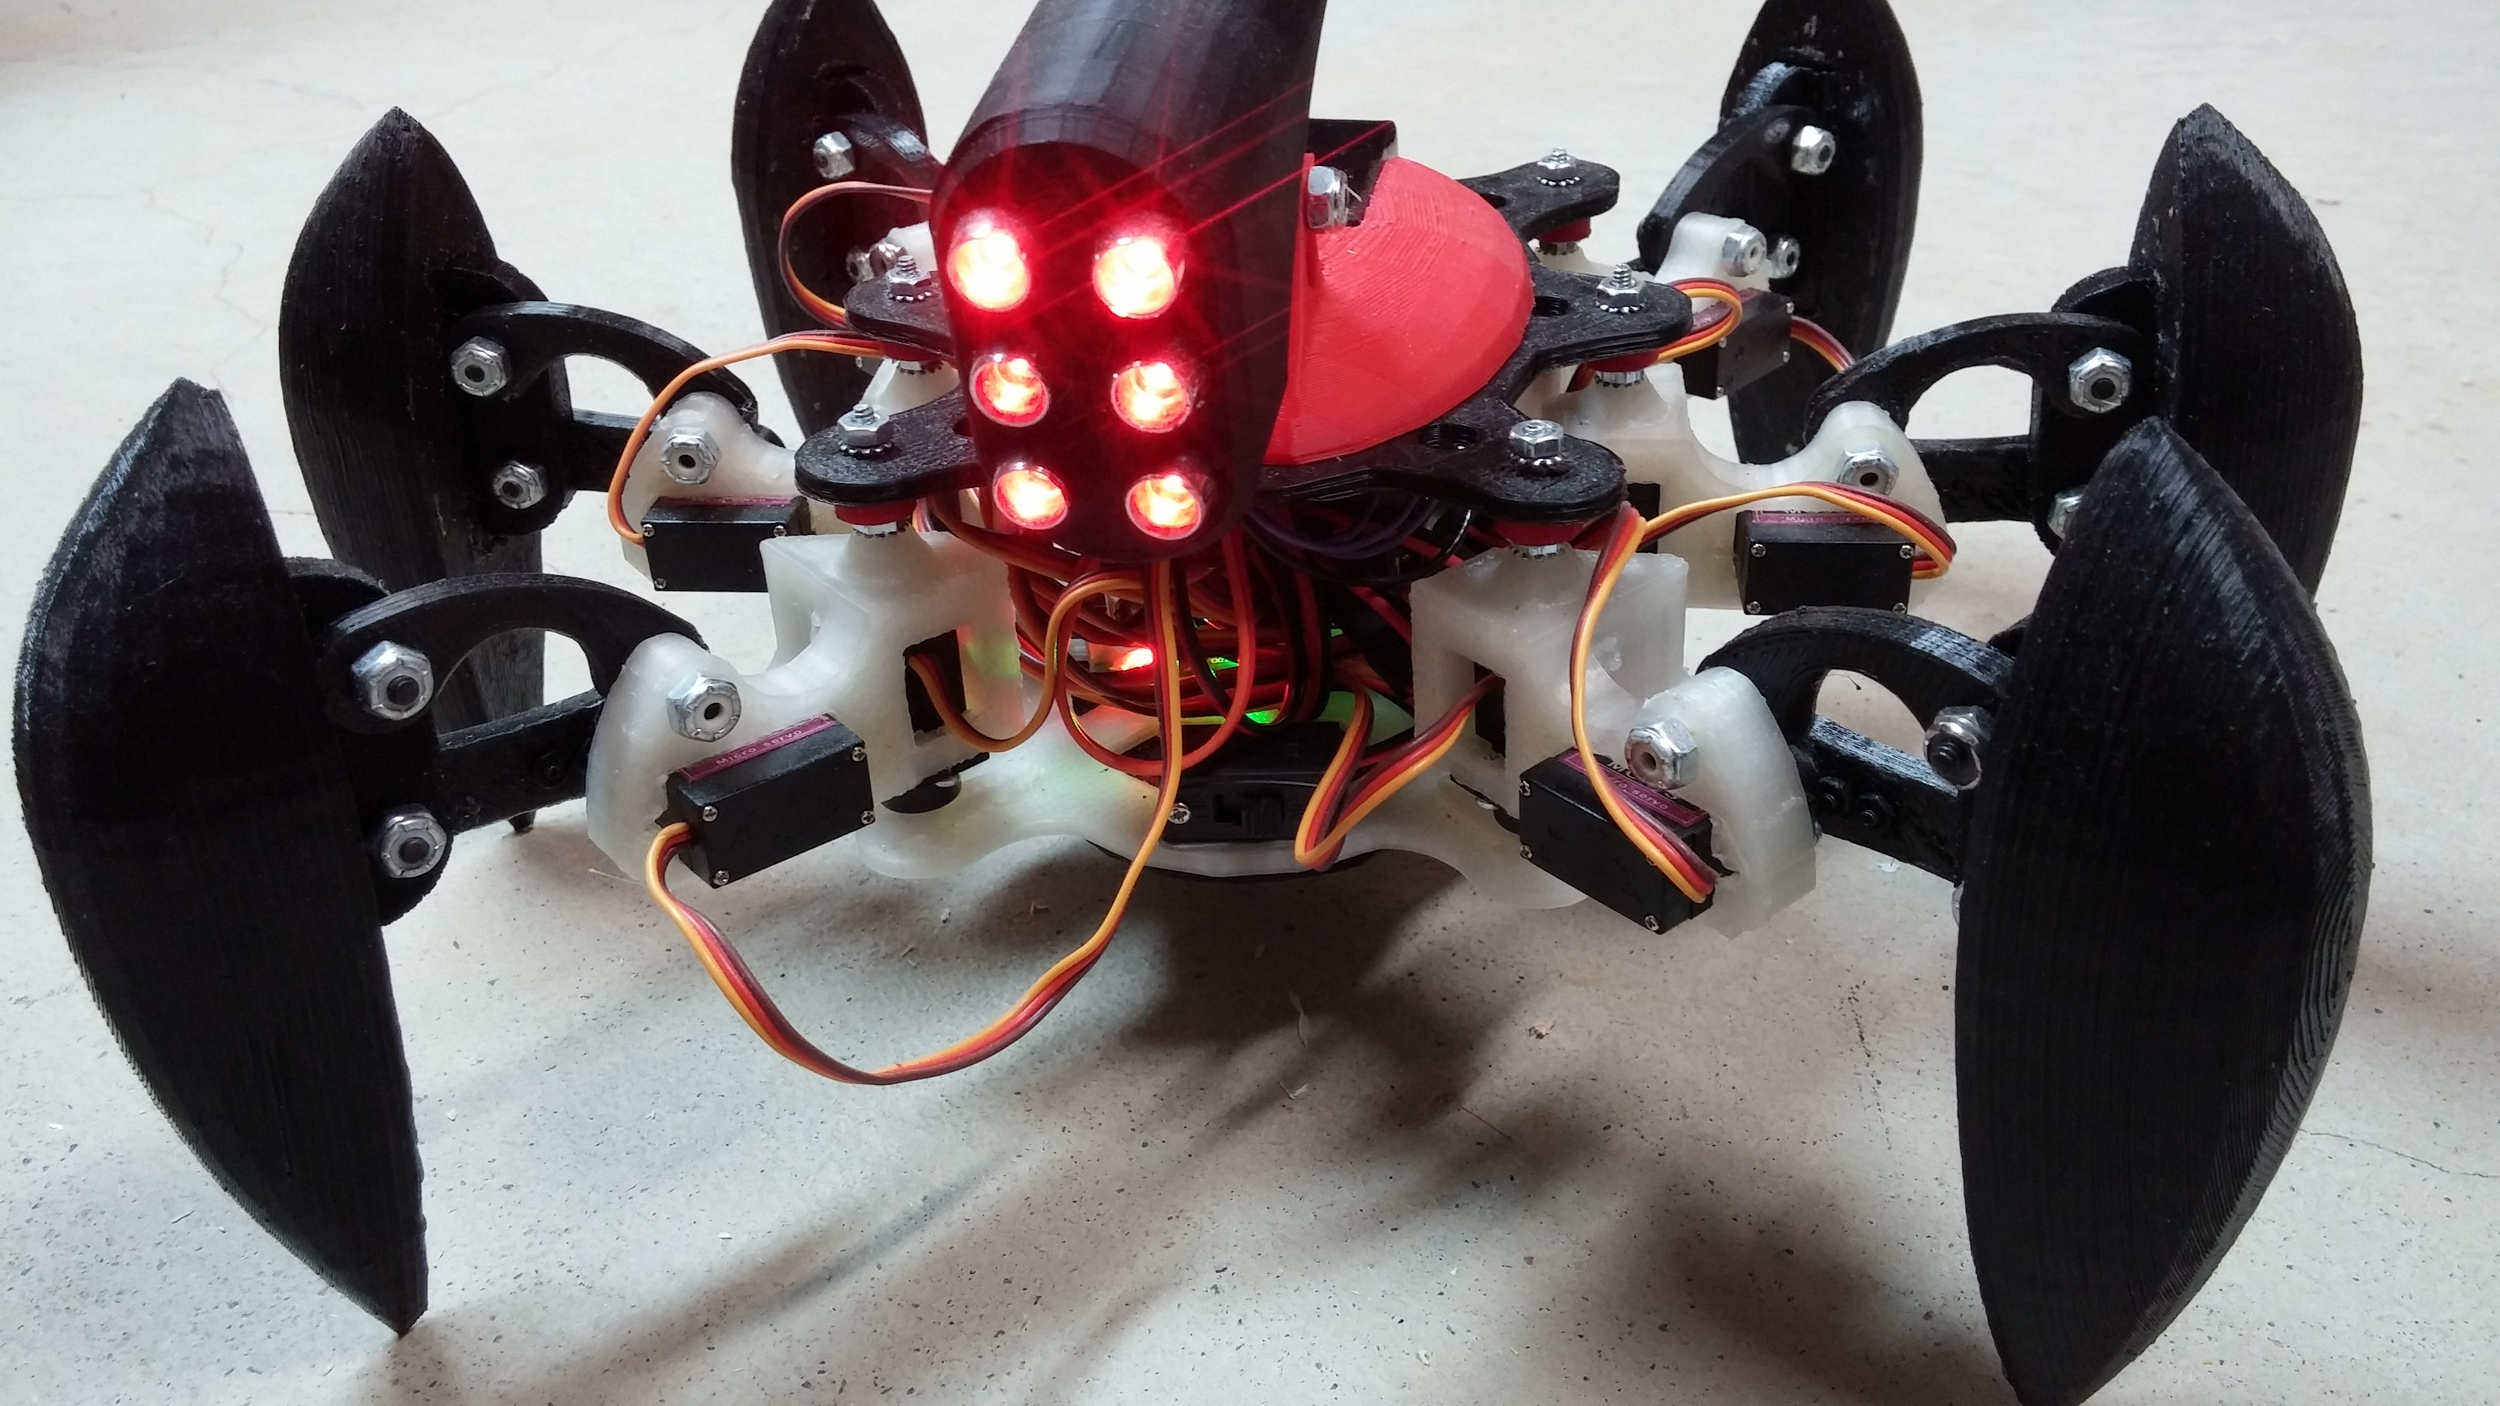 Hexapod - 3D printed 6 leg creature. Each leg has 2 servos (2 DOF). 3D parts can be found from the link:http://www.thingiverse.com/thing:176991